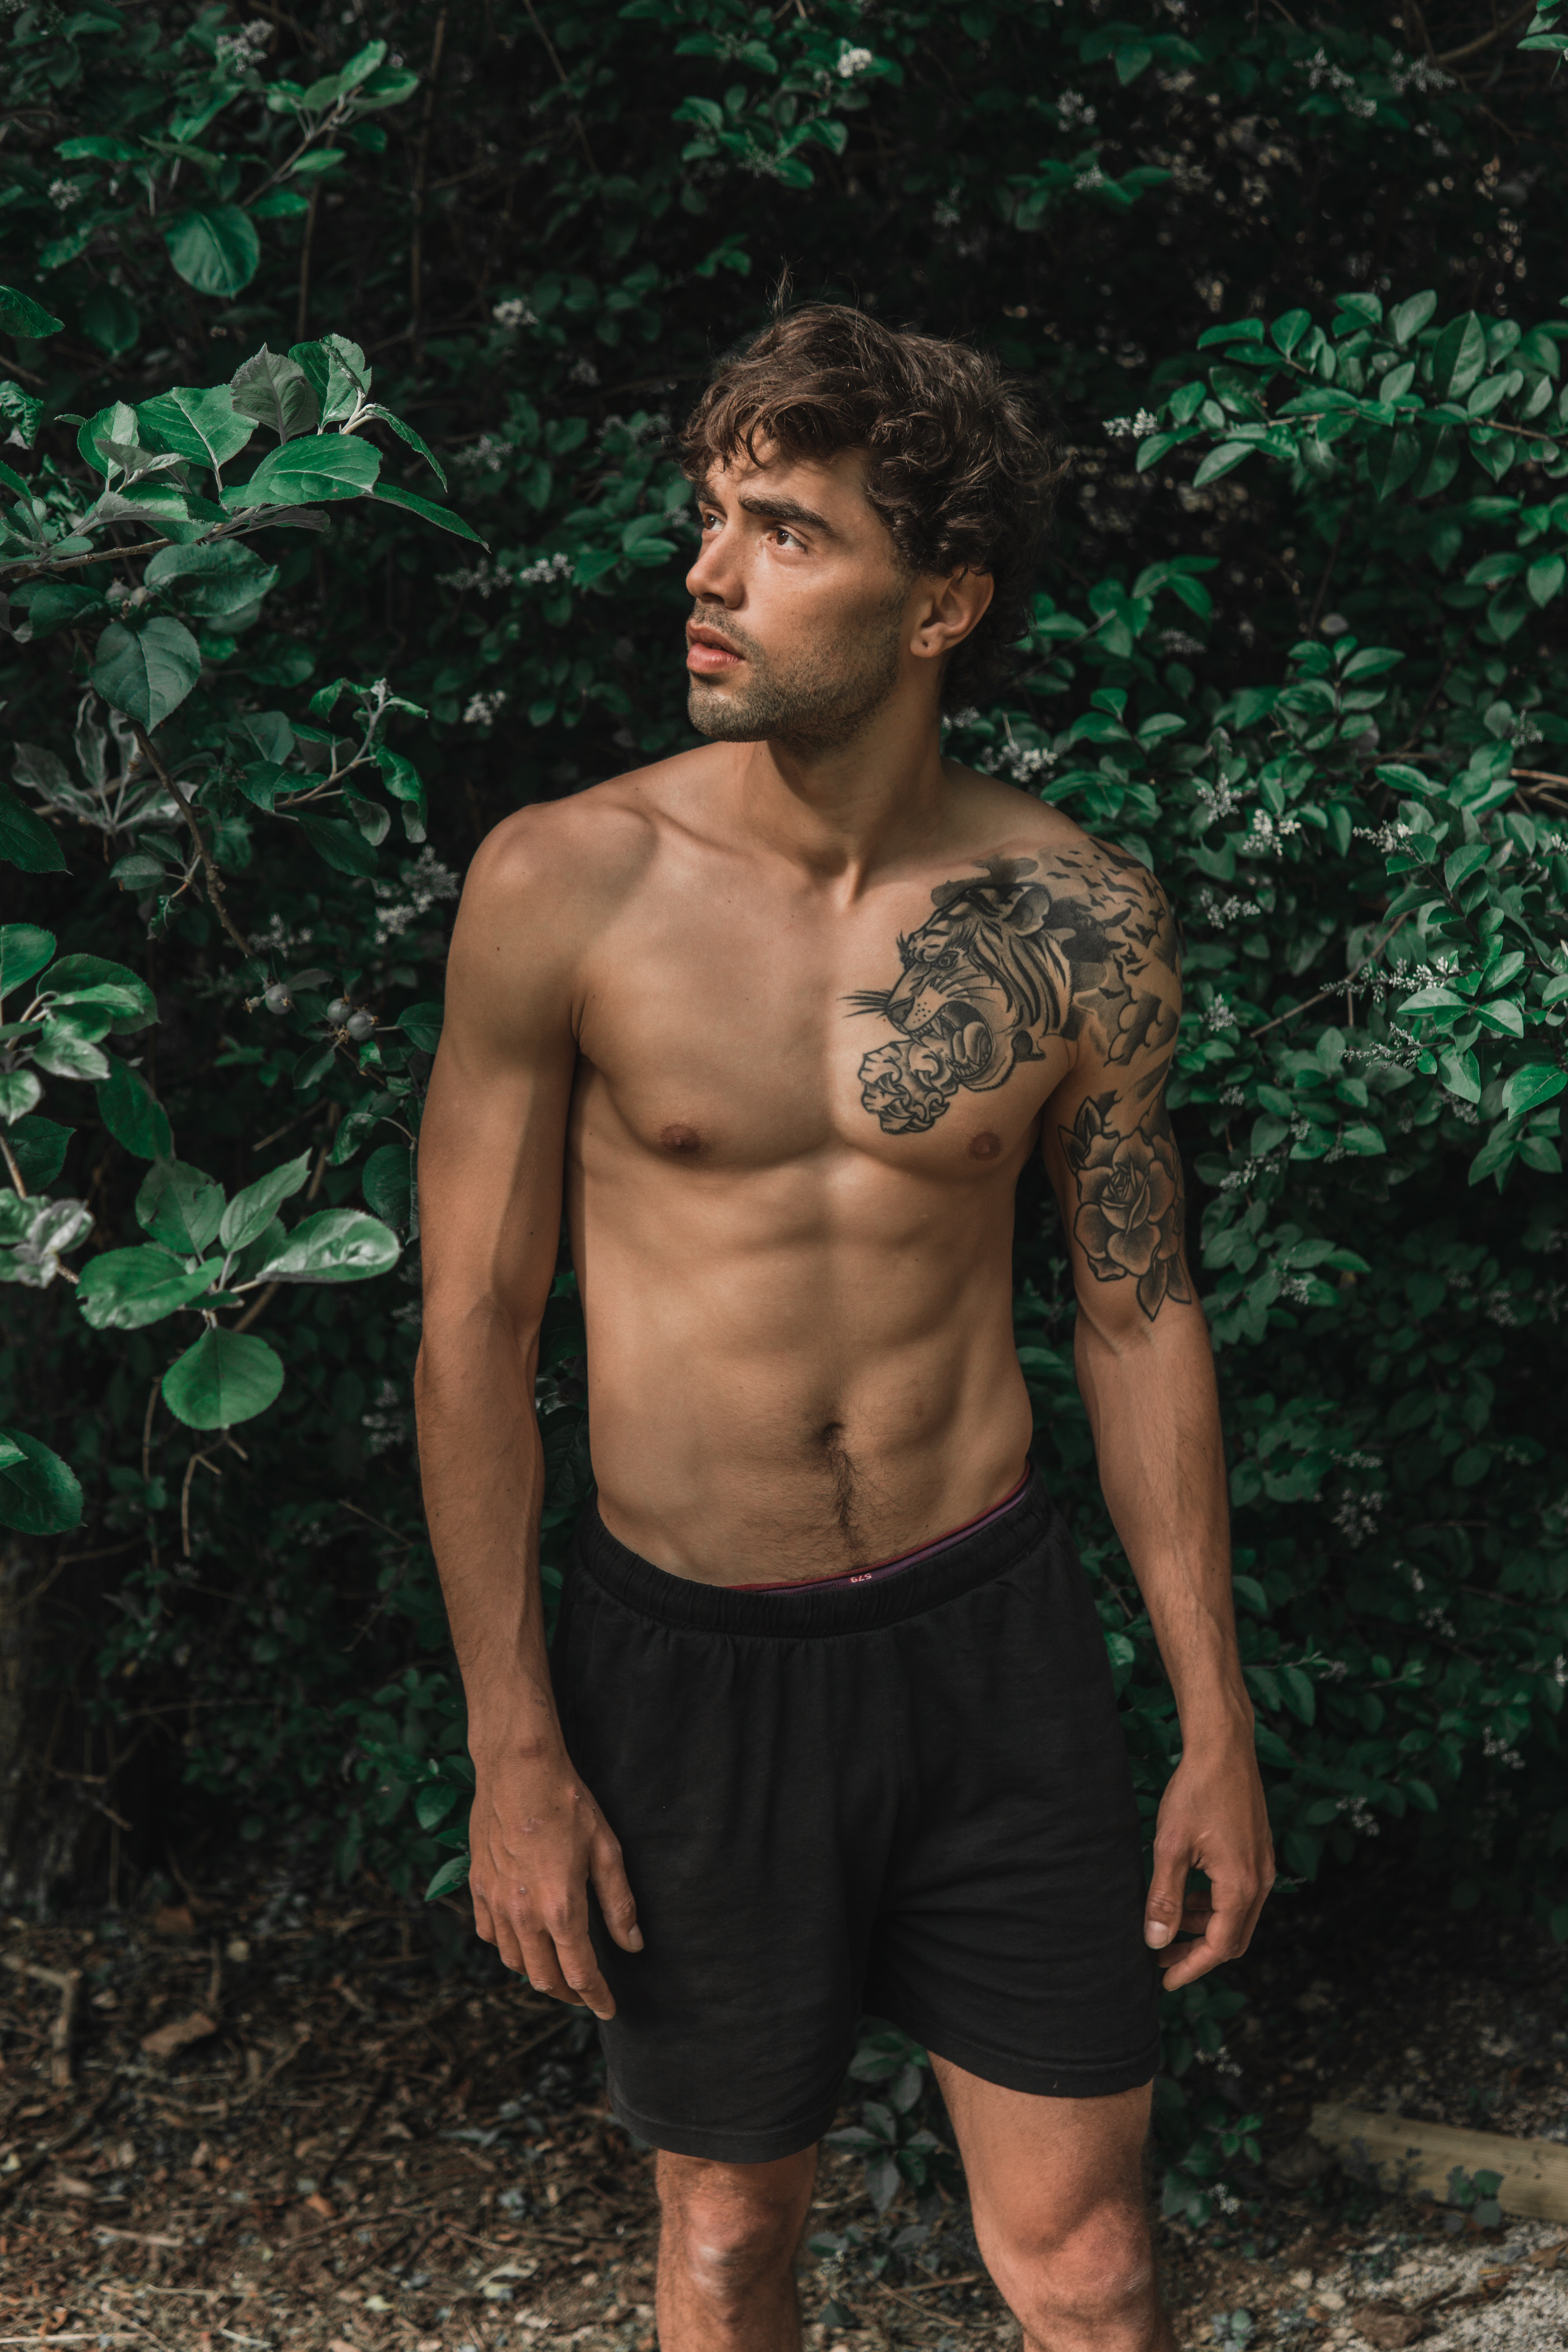 Photo Of Shirtless Man In Black Board Shorts Standing In Front Of Green Leafed Plants Looking Away Free Stock Photo